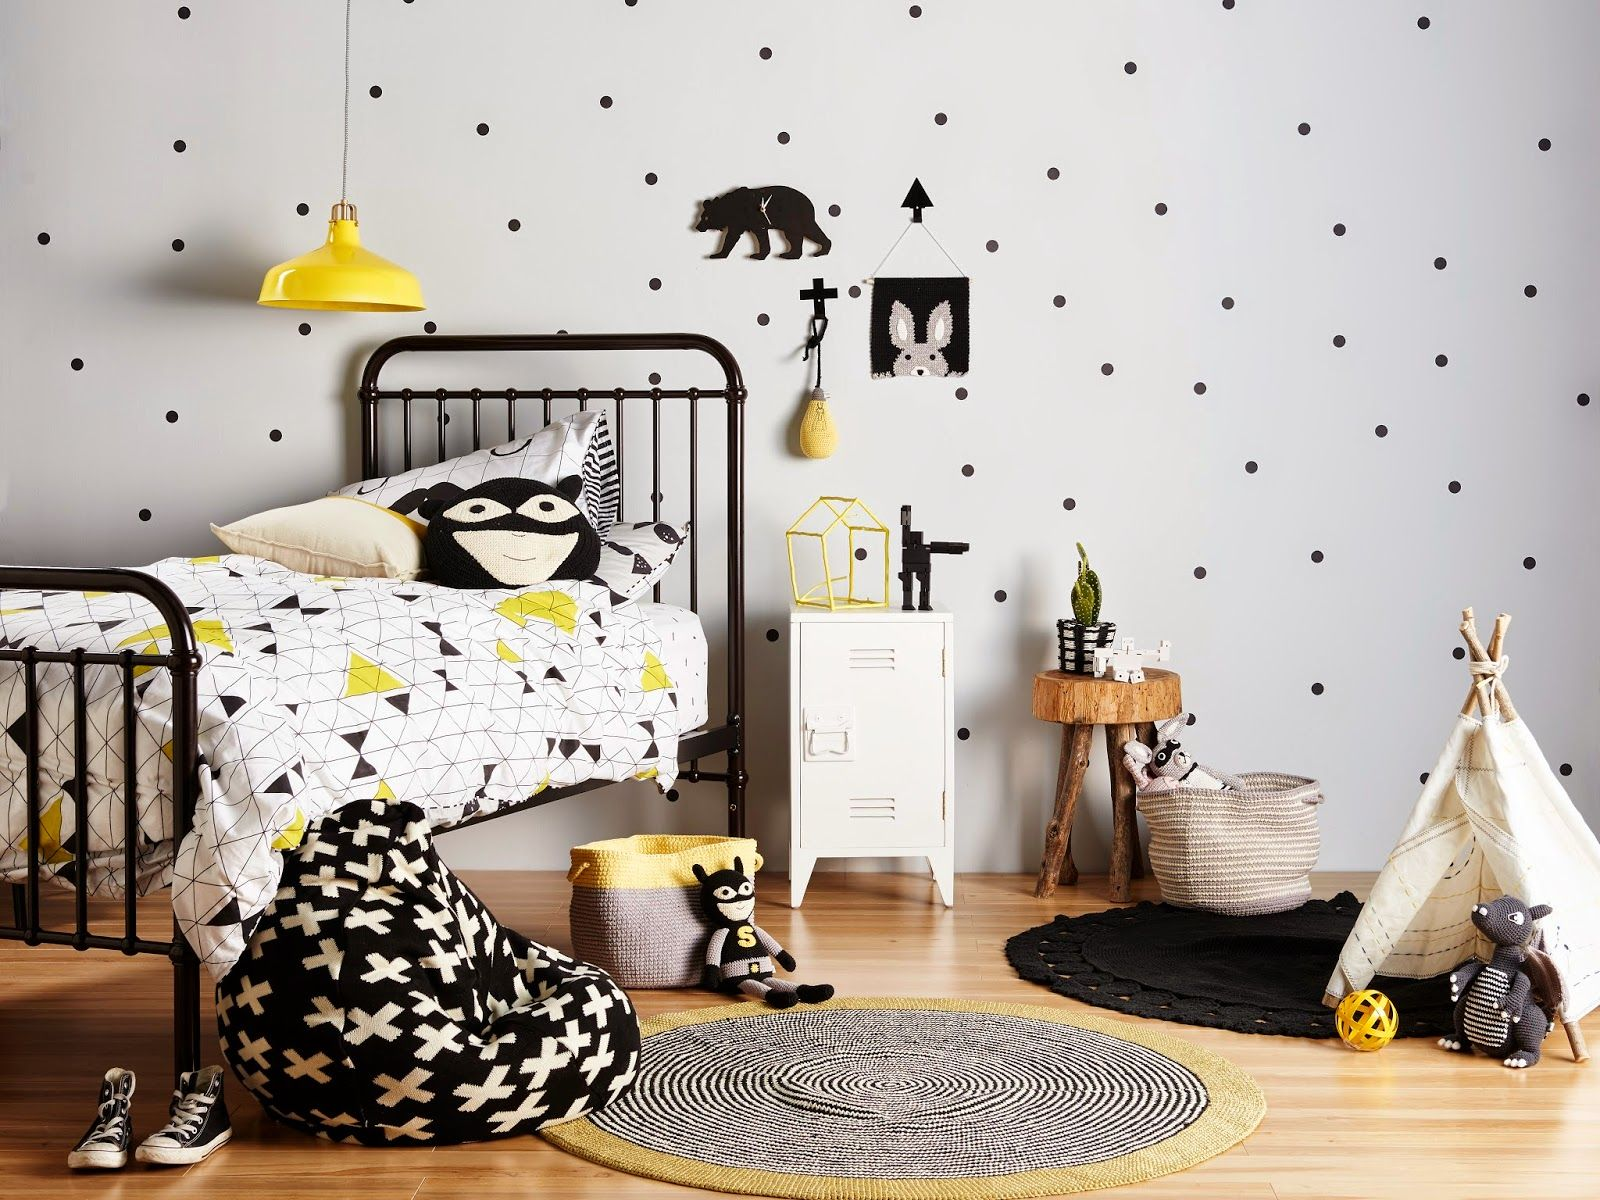 Bedroom designs for boys black - Inspirations Une Chambre D Enfant En Noir Et Blanc Kids Bedroom Ideasplayroom